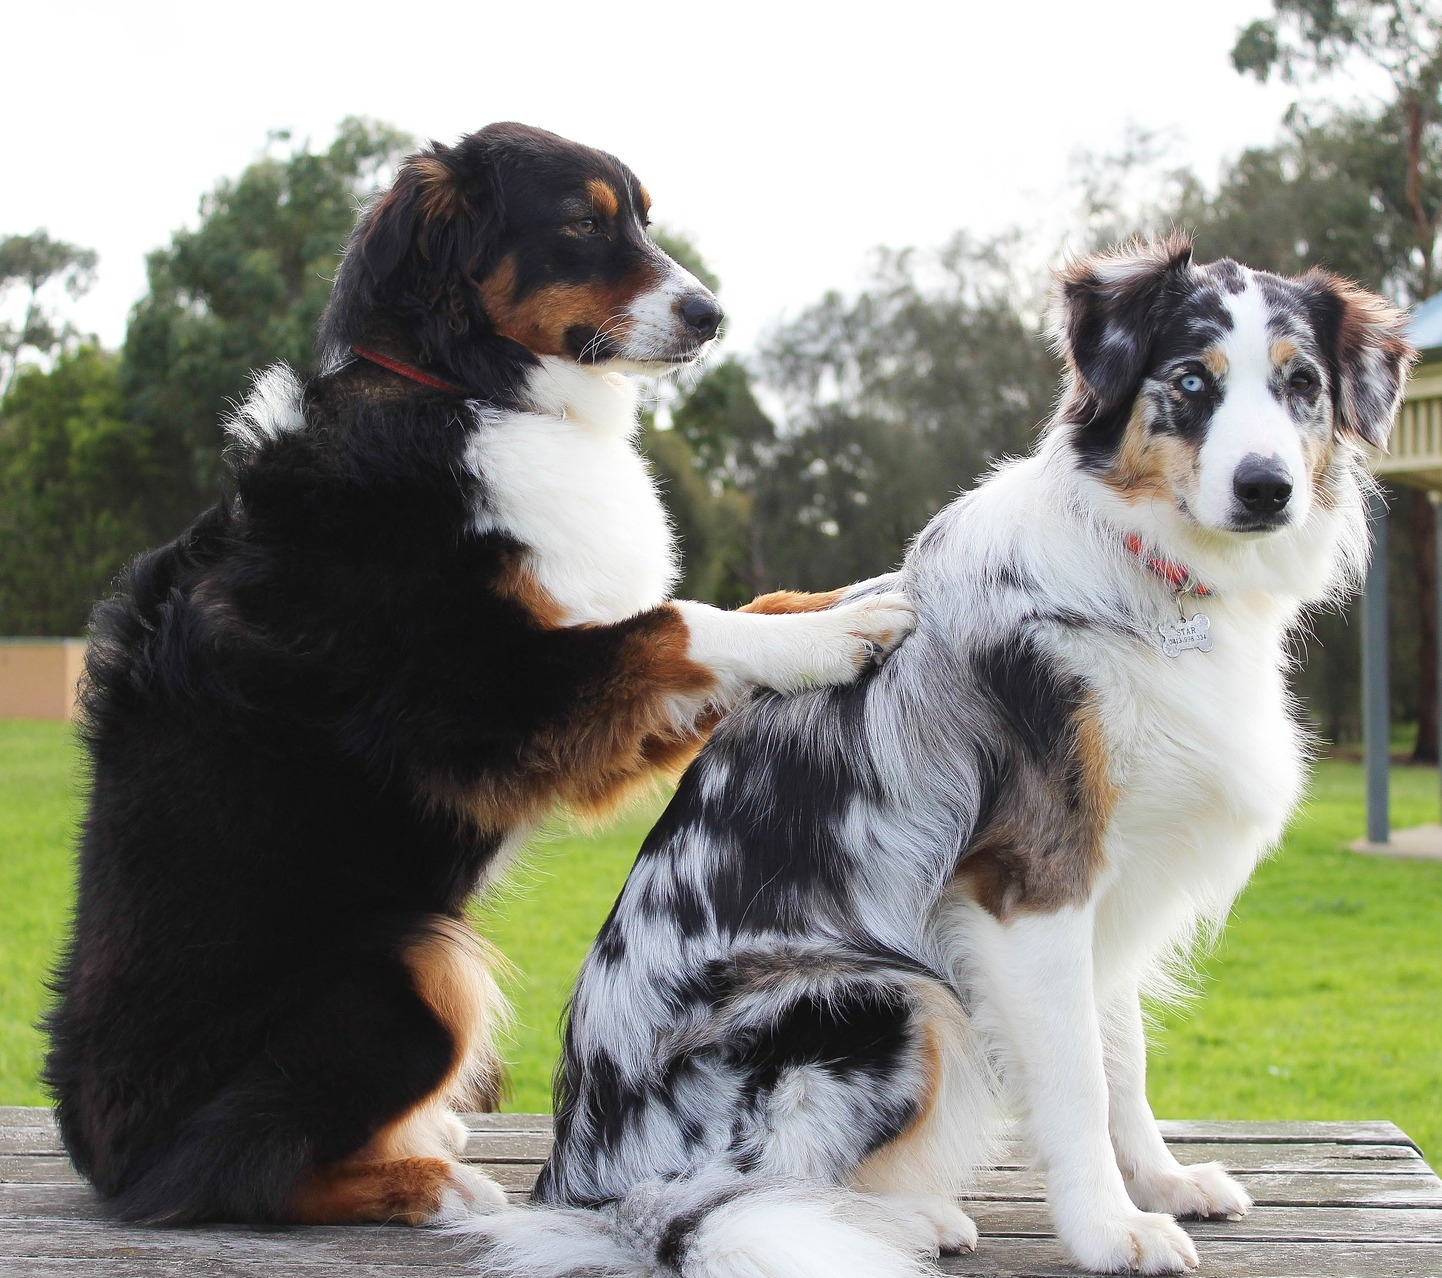 Massage Classes - Learn how to give the benefits of massage to your significant other of beloved canine companion.